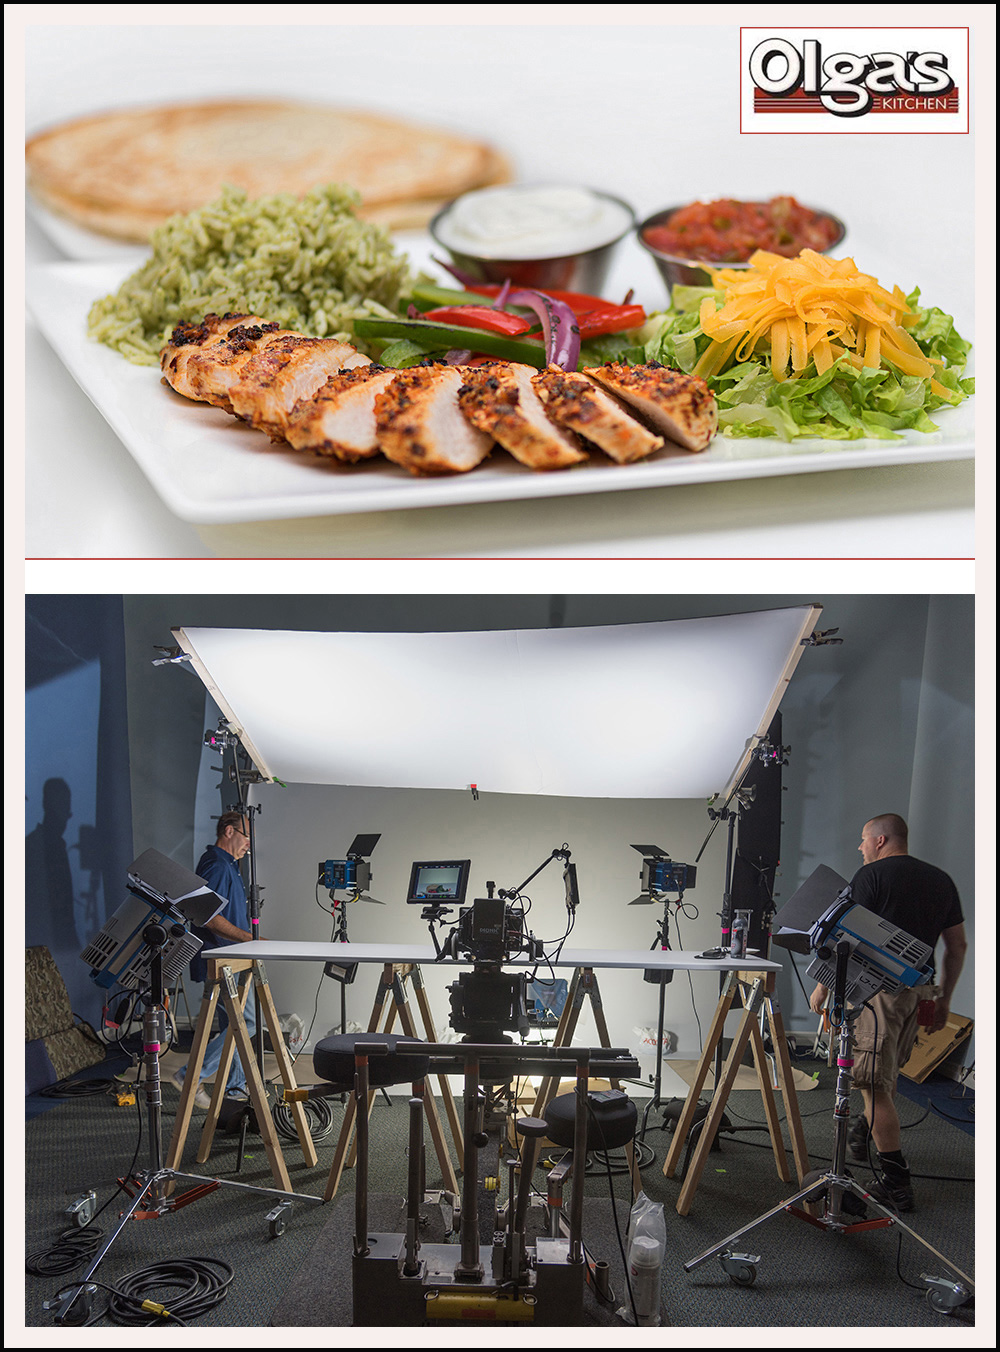 photo shoot of food for a restaurant menu advertising